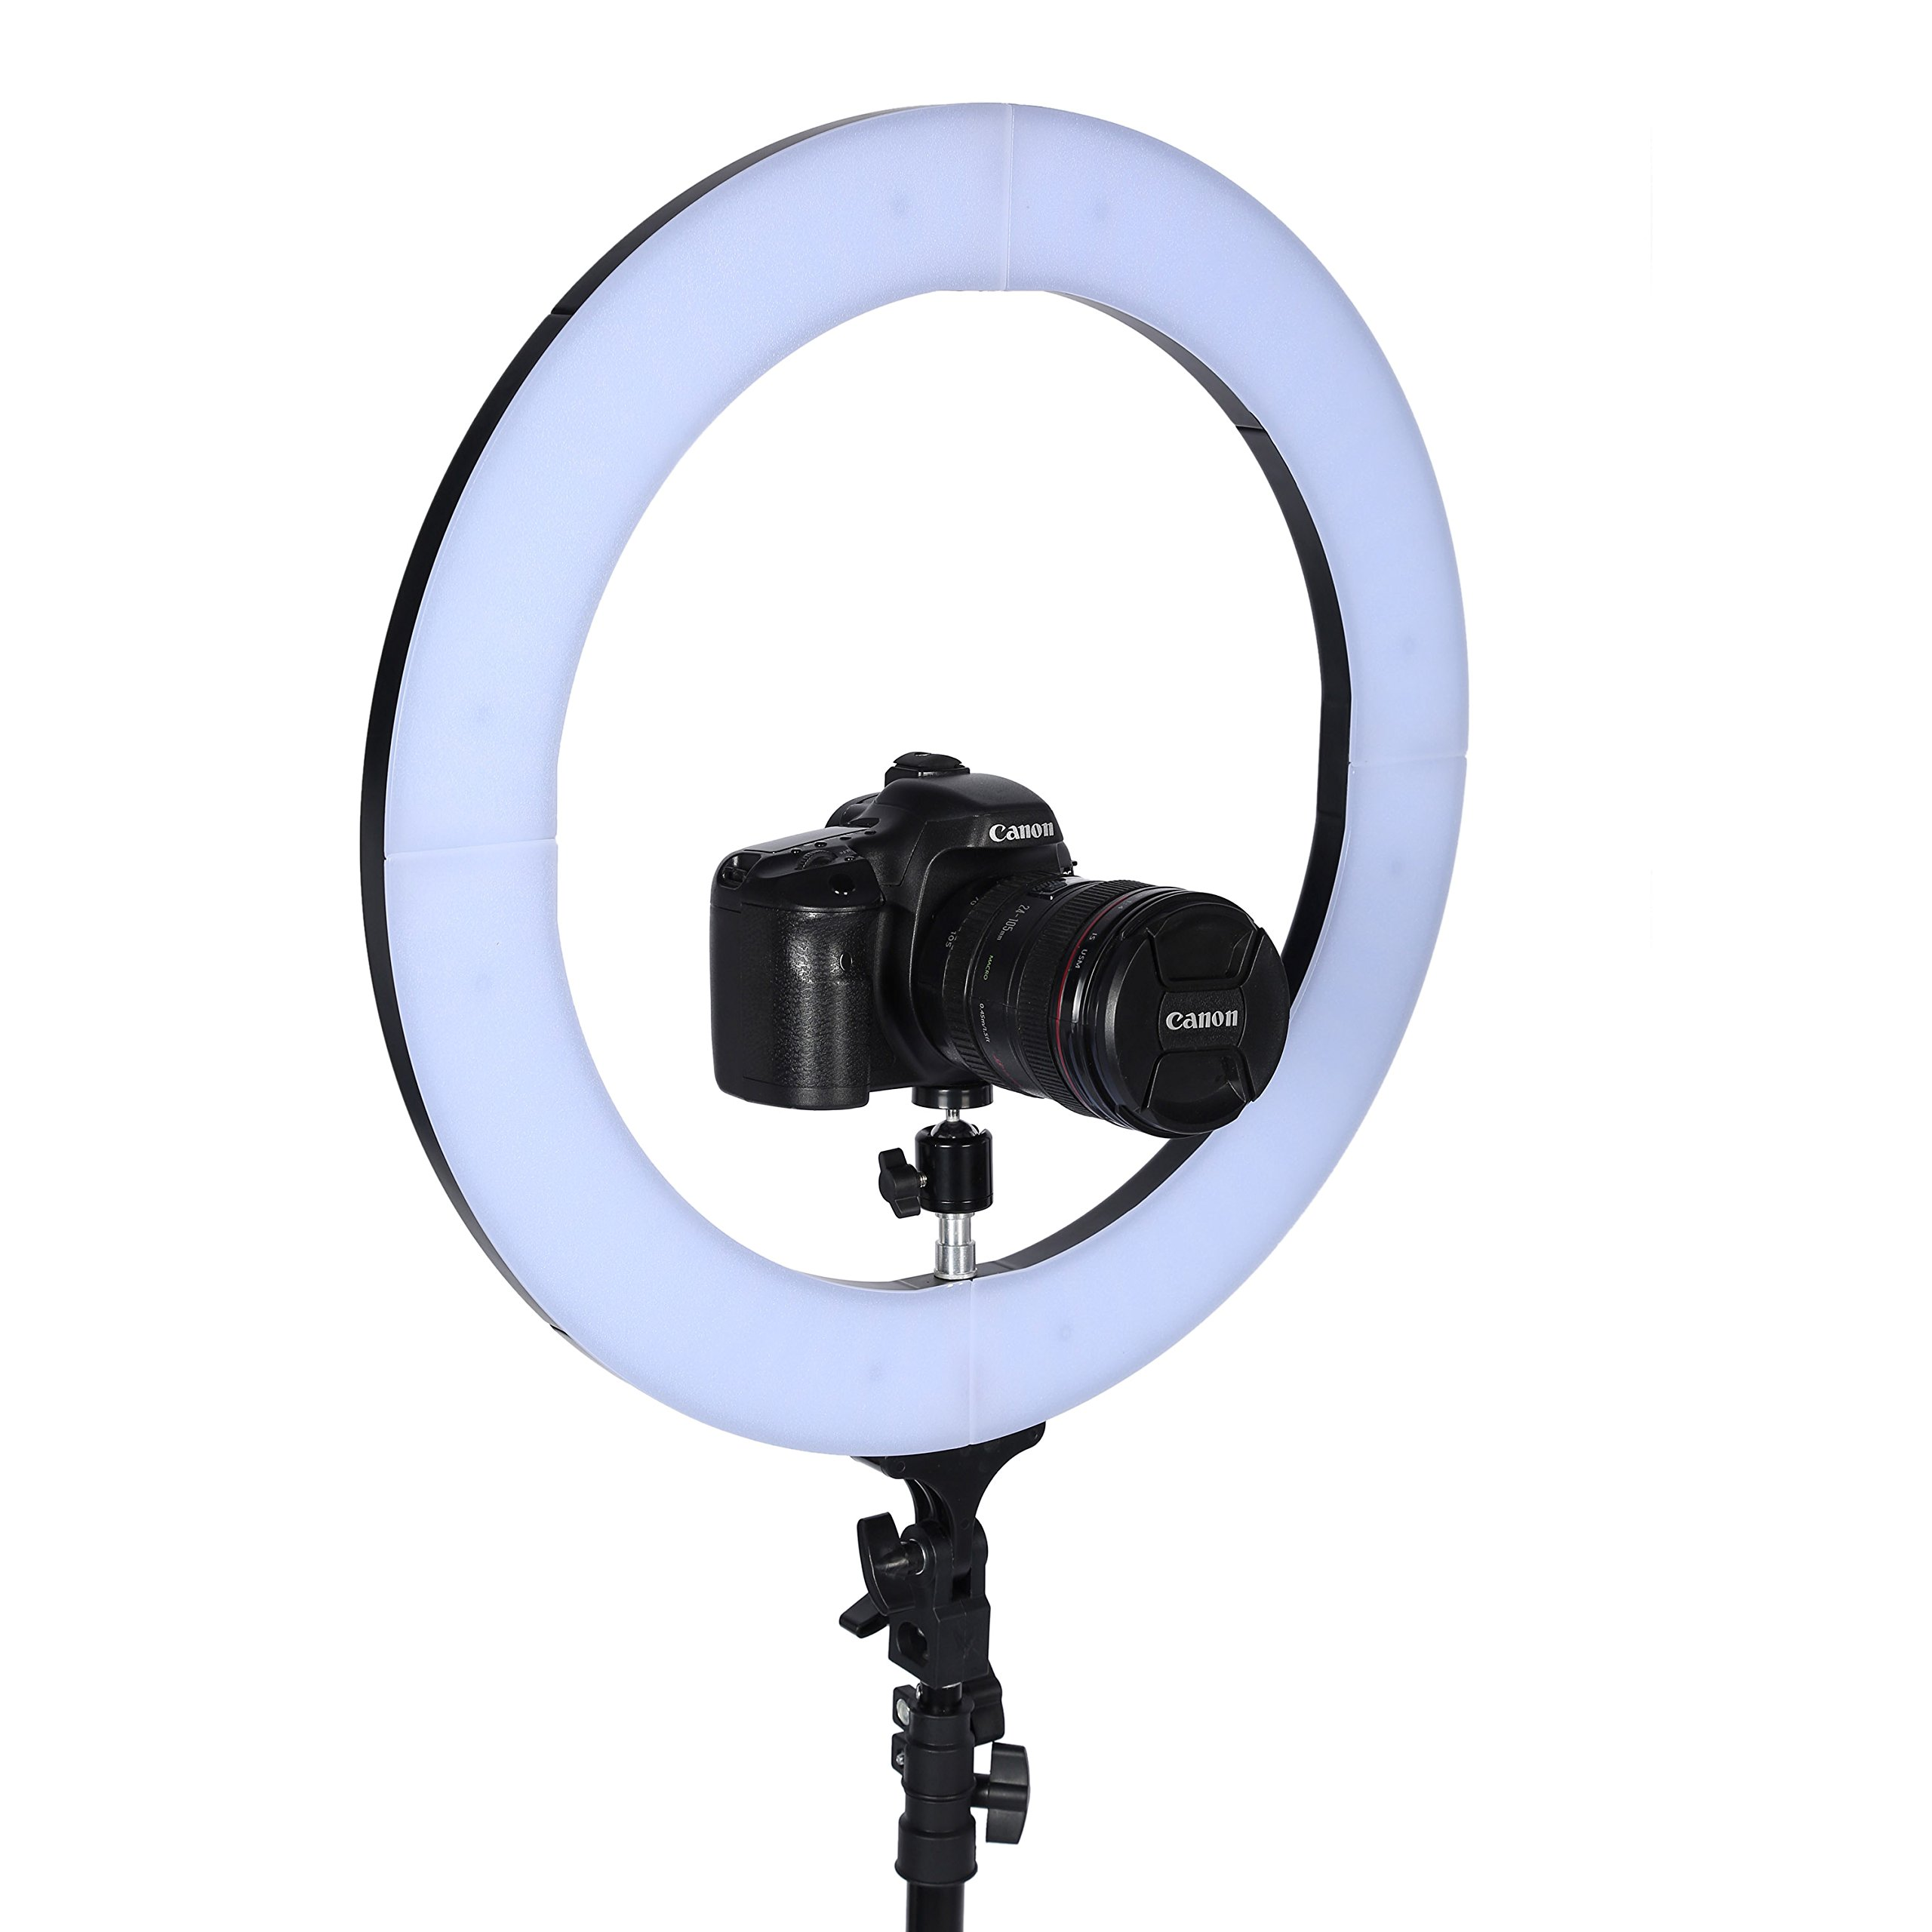 Awaytoy 18'' Adjustable LED Photography Ring Light for Portraits,Fashion Shot and Youtube Vine Self-portrait Video Capture